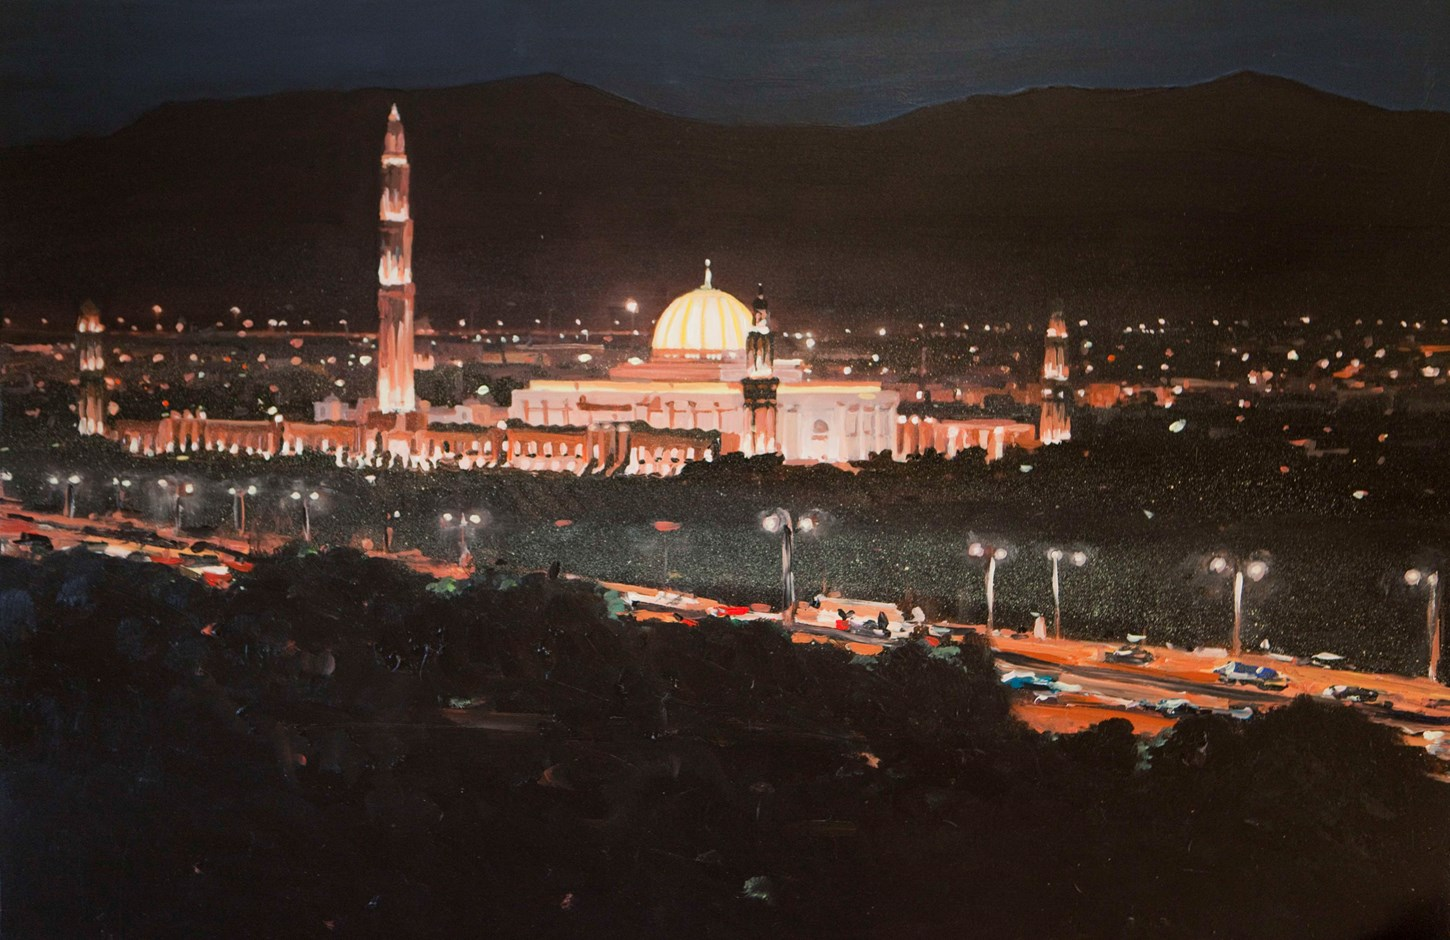 Sultan Qaboos Mosque at night